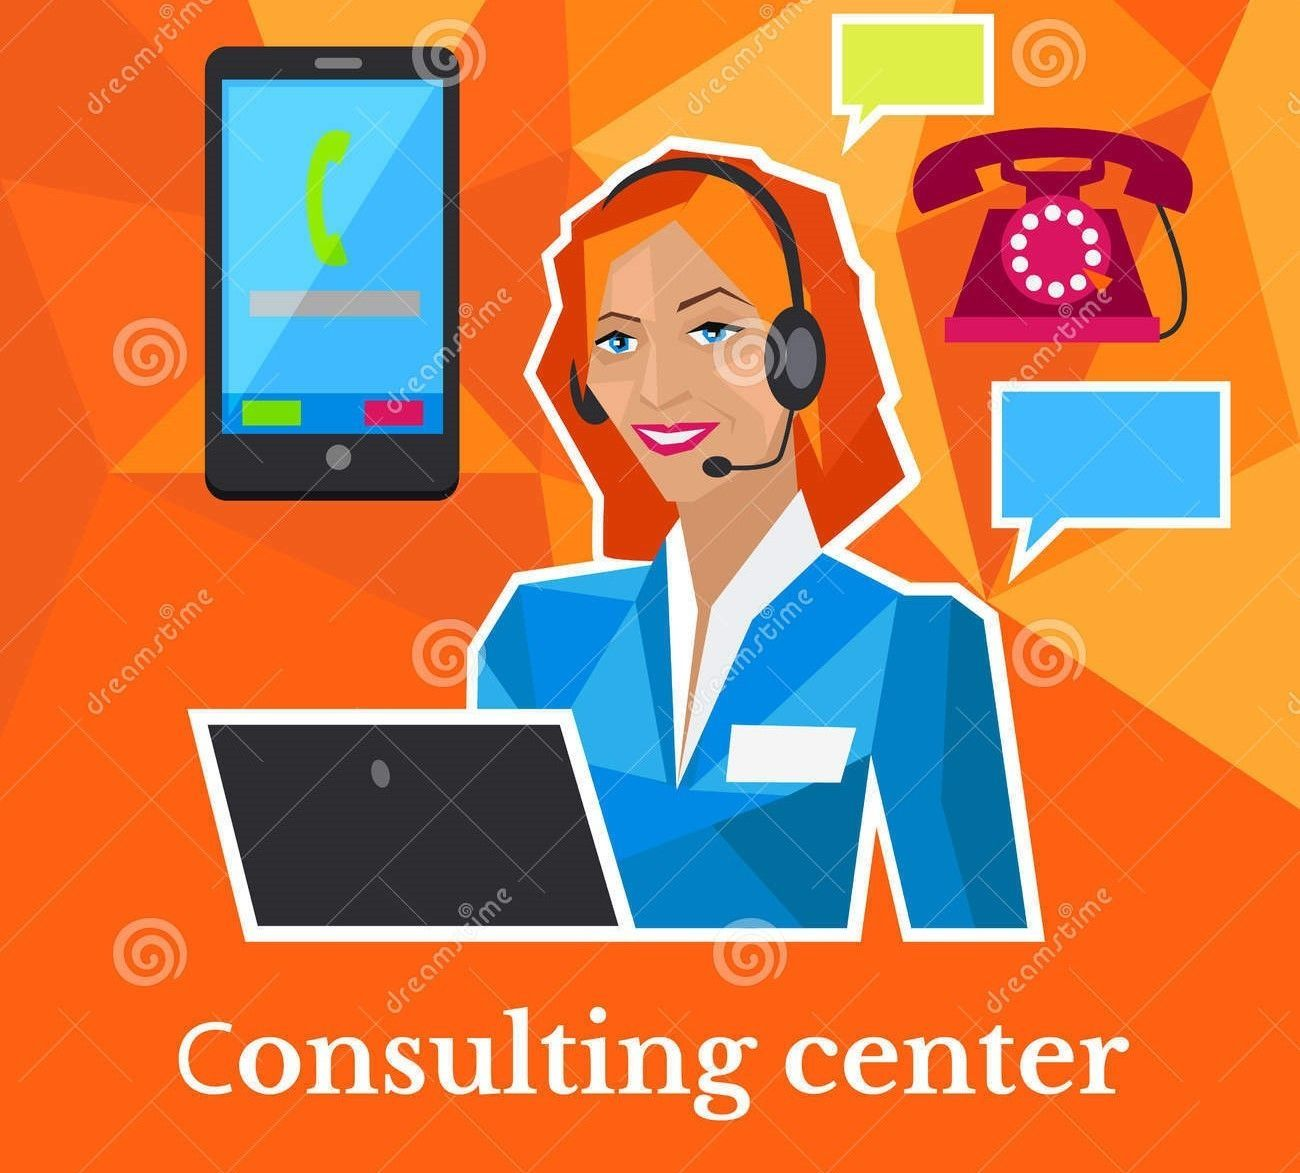 International Consulting center